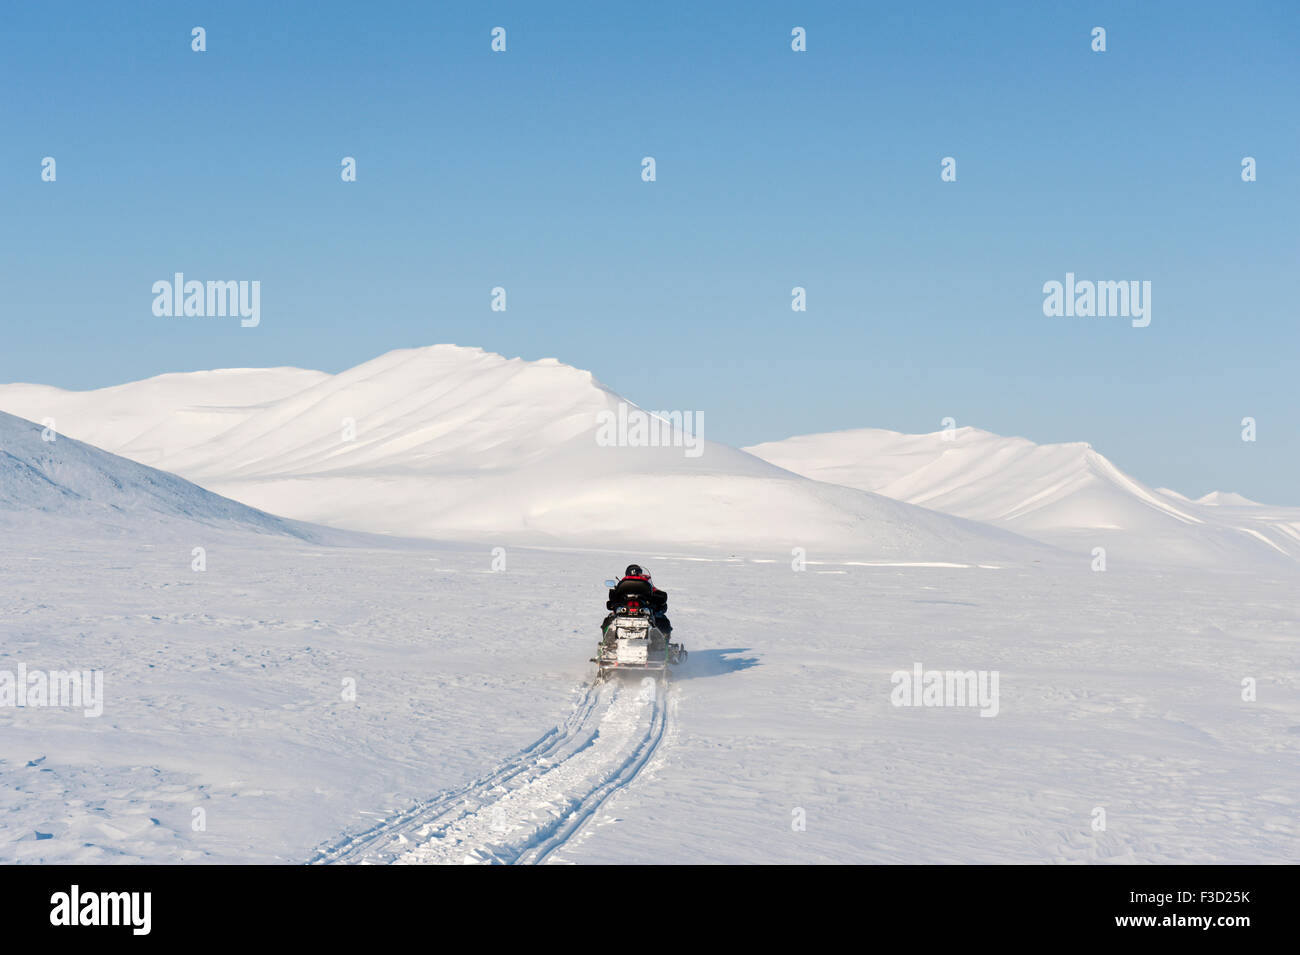 Man on snowmobile on it's way in a snowcovered landscape, Spitsbergen, Svalbard, Norway. - Stock Image